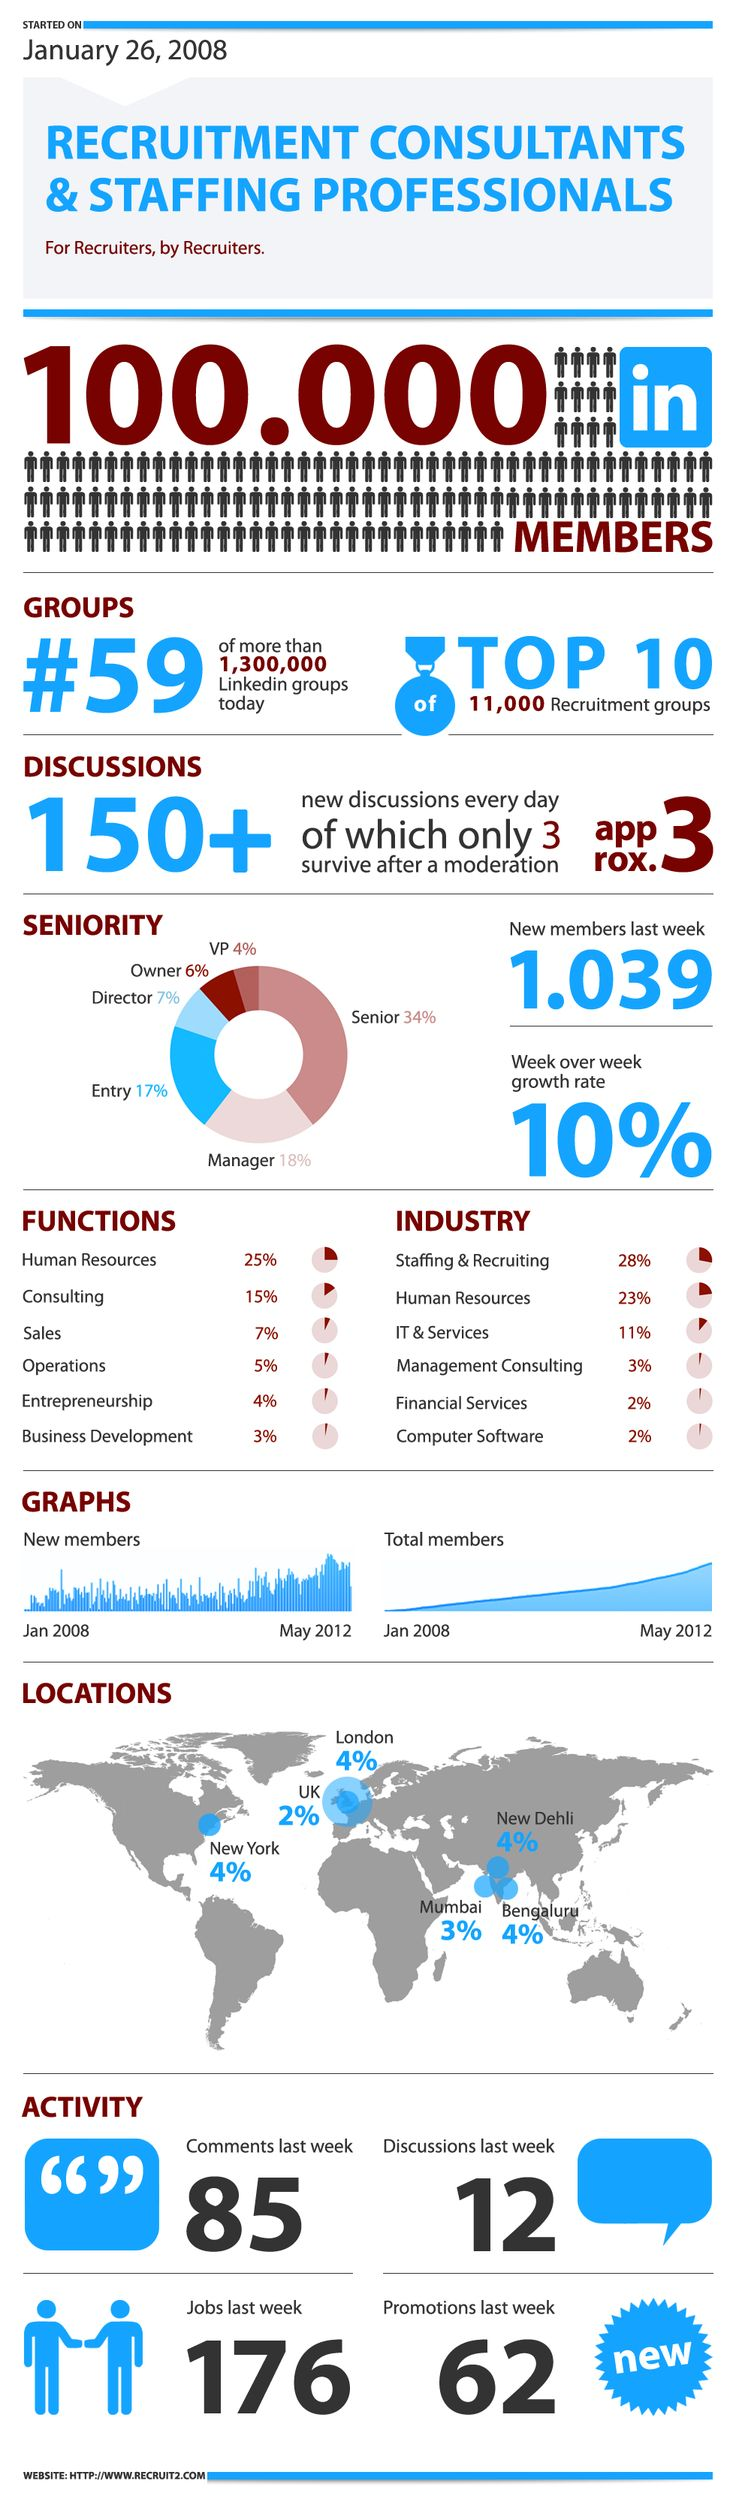 Connecting 100,000 Recruitment Consultants [INFOGRAPHIC]. Join and get connected http://www.linkedin.com/e/gis/52762/1C9C2422549E